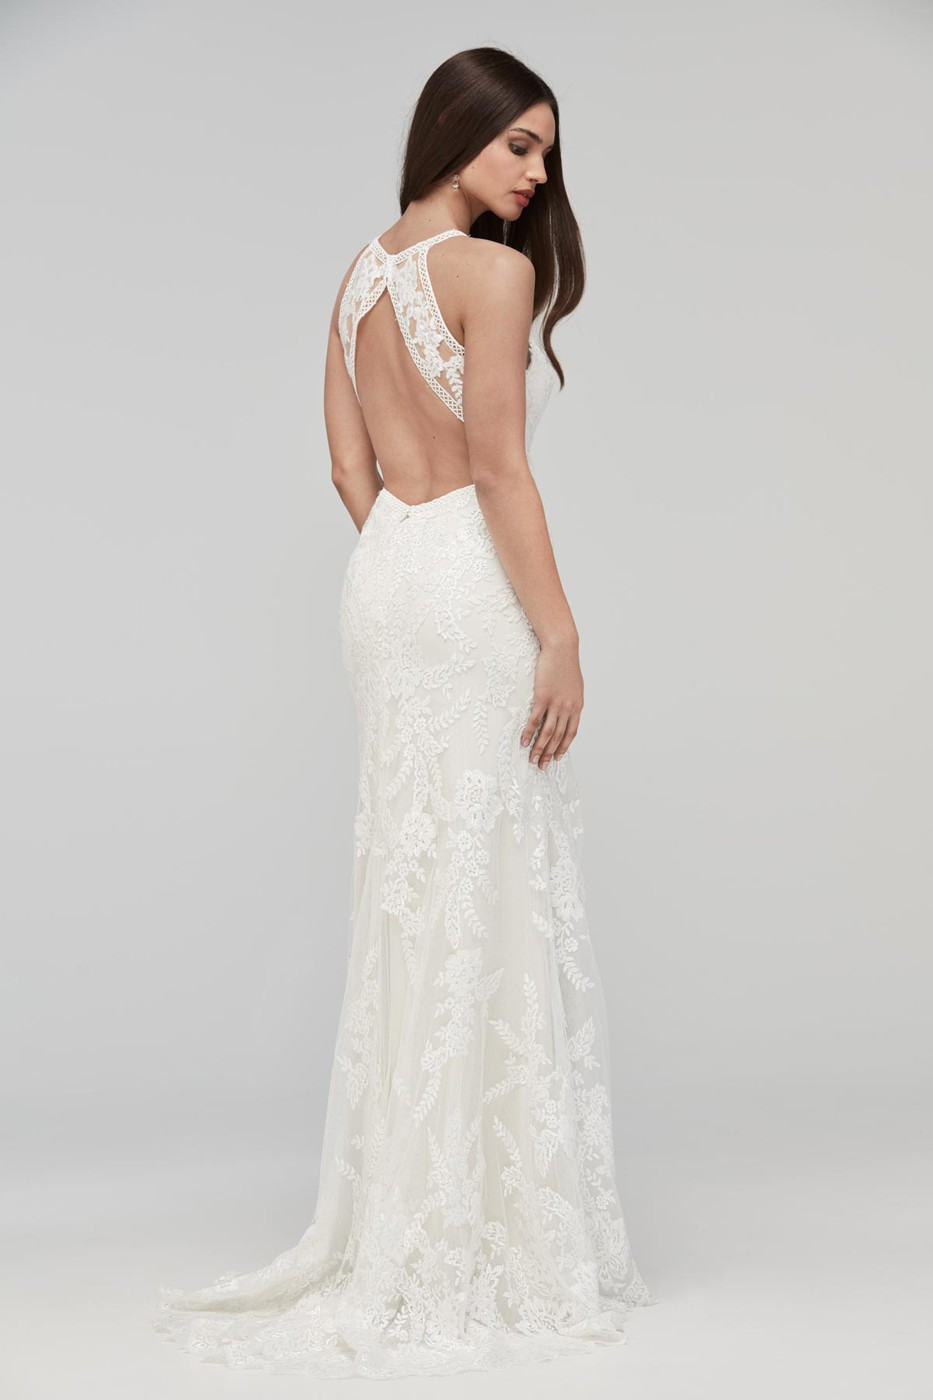 Wtoo 19104 aquila high neck wedding dress madamebridal wtoo 19104 aquila high neck wedding dress junglespirit Choice Image